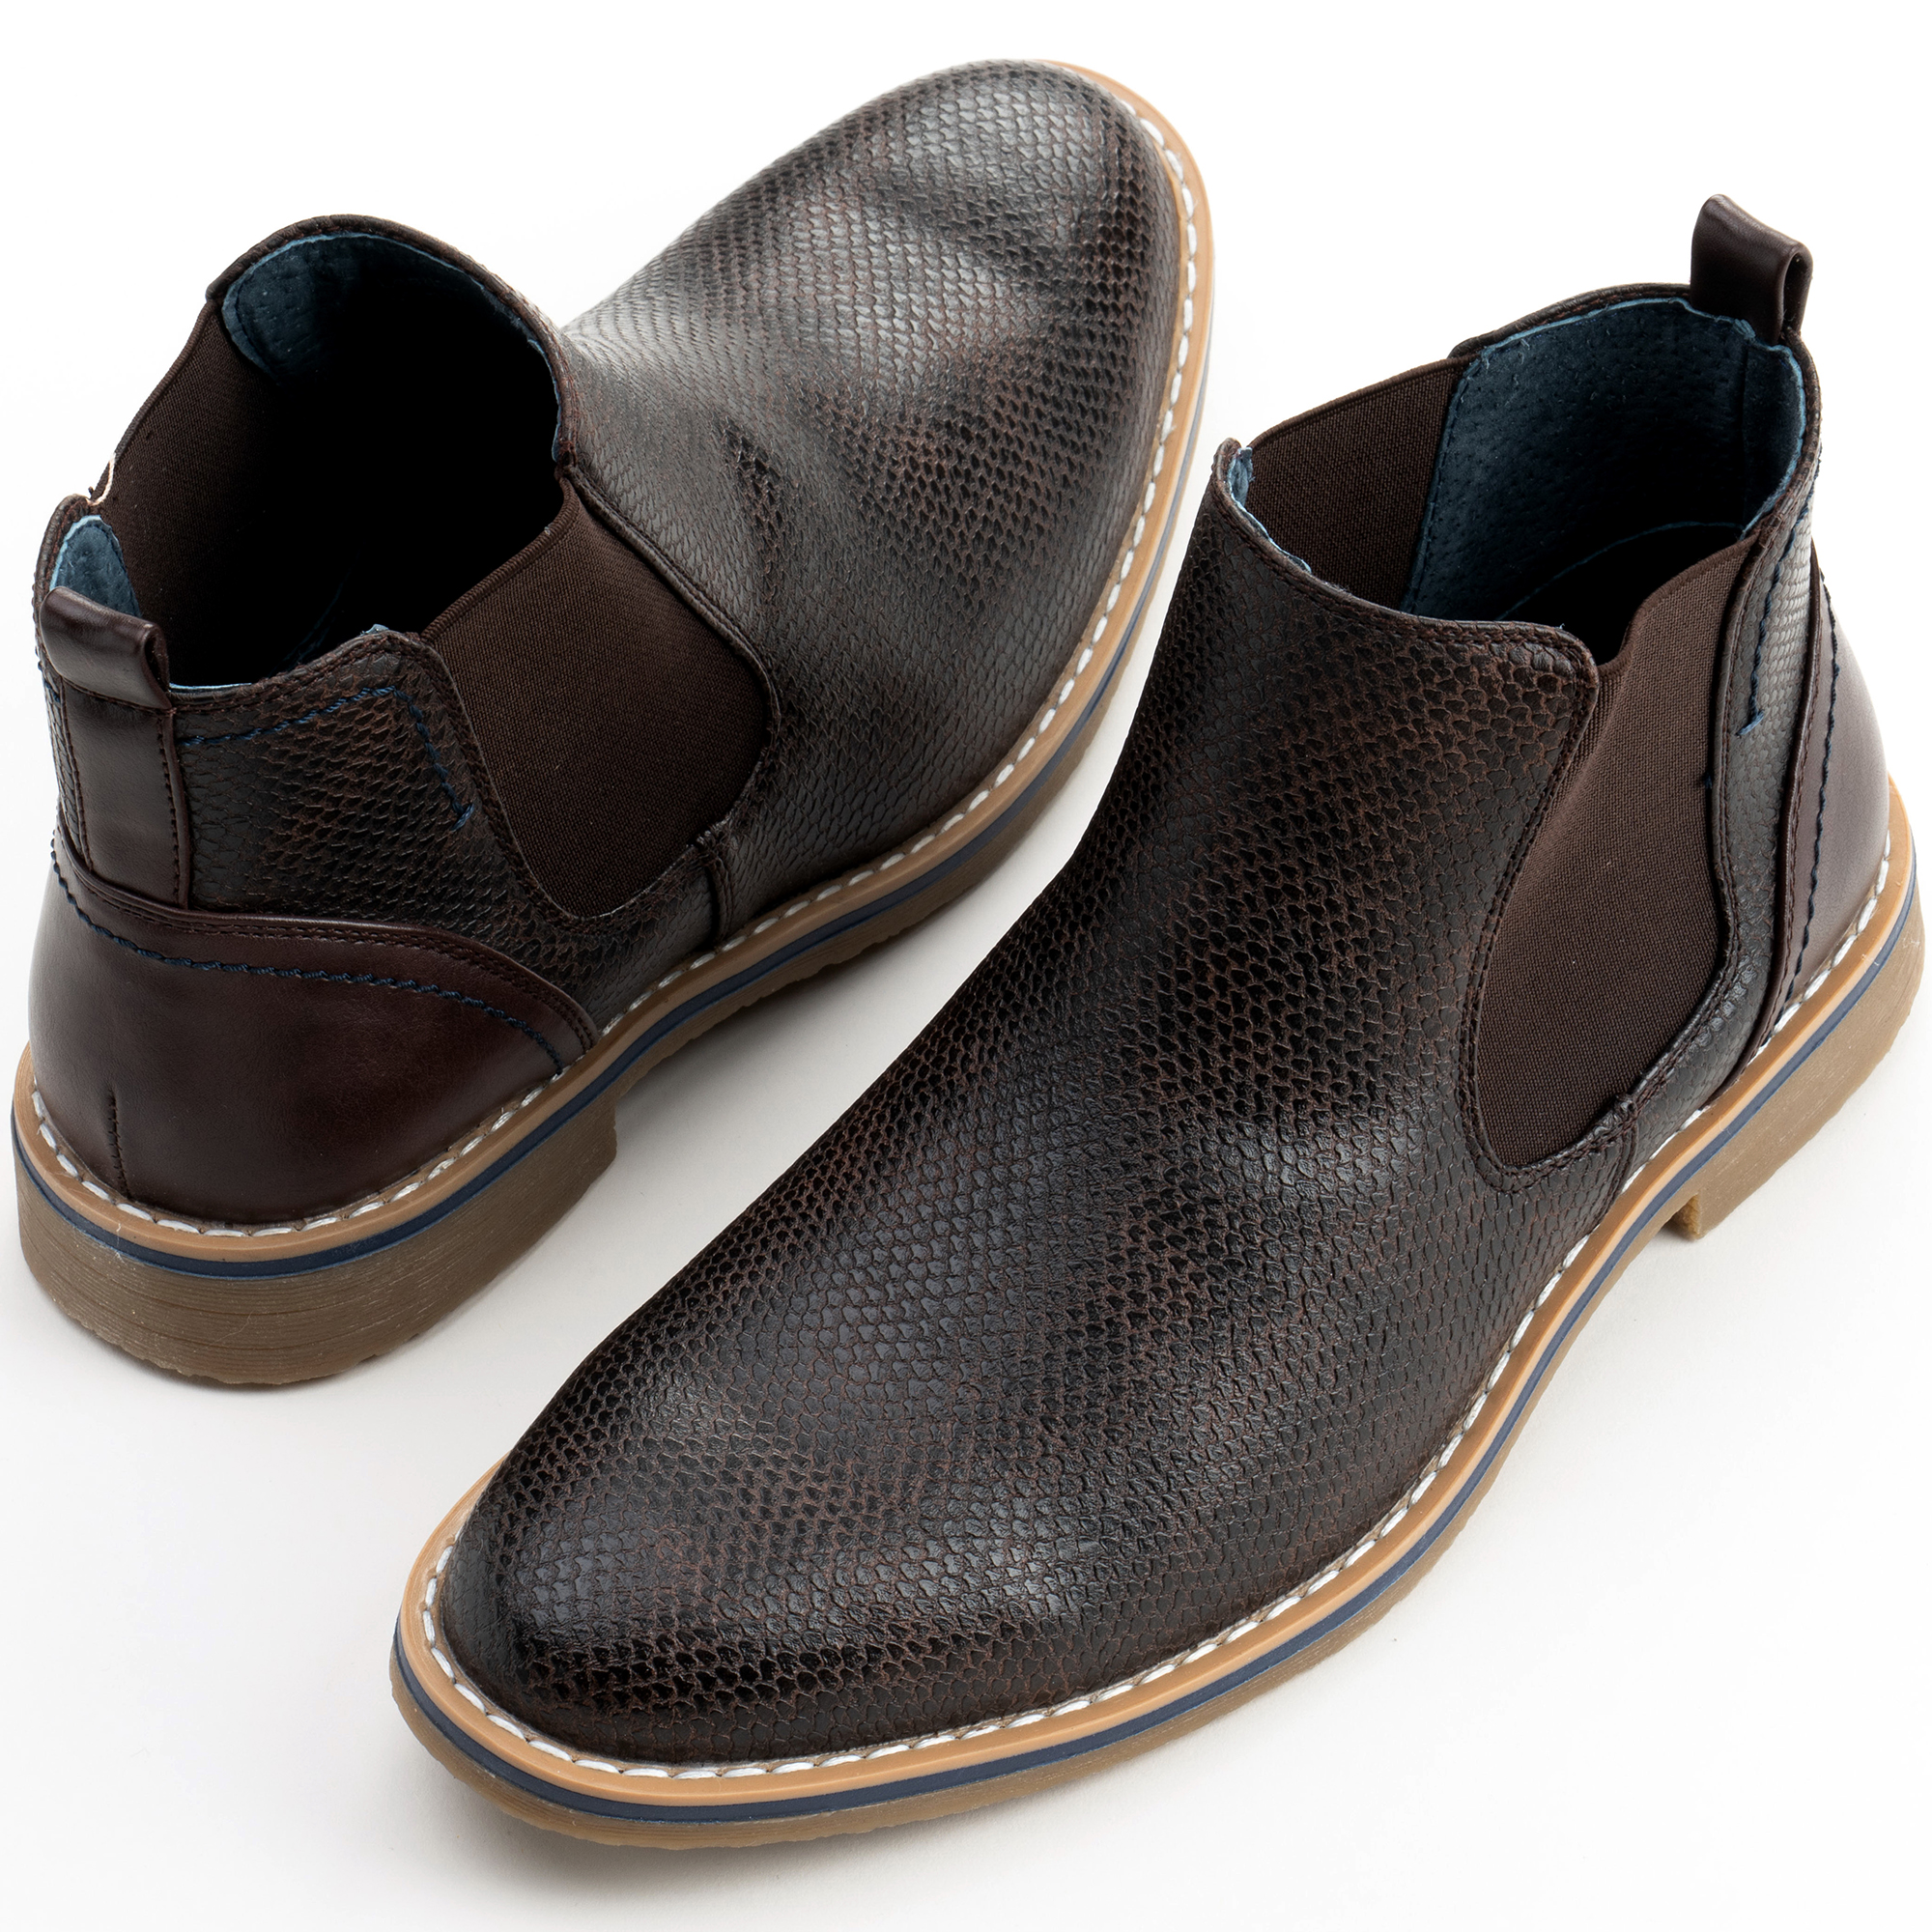 Alpine-Swiss-Mens-Nash-Chelsea-Boots-Snakeskin-Ankle-Boot-Genuine-Leather-Lined miniature 21